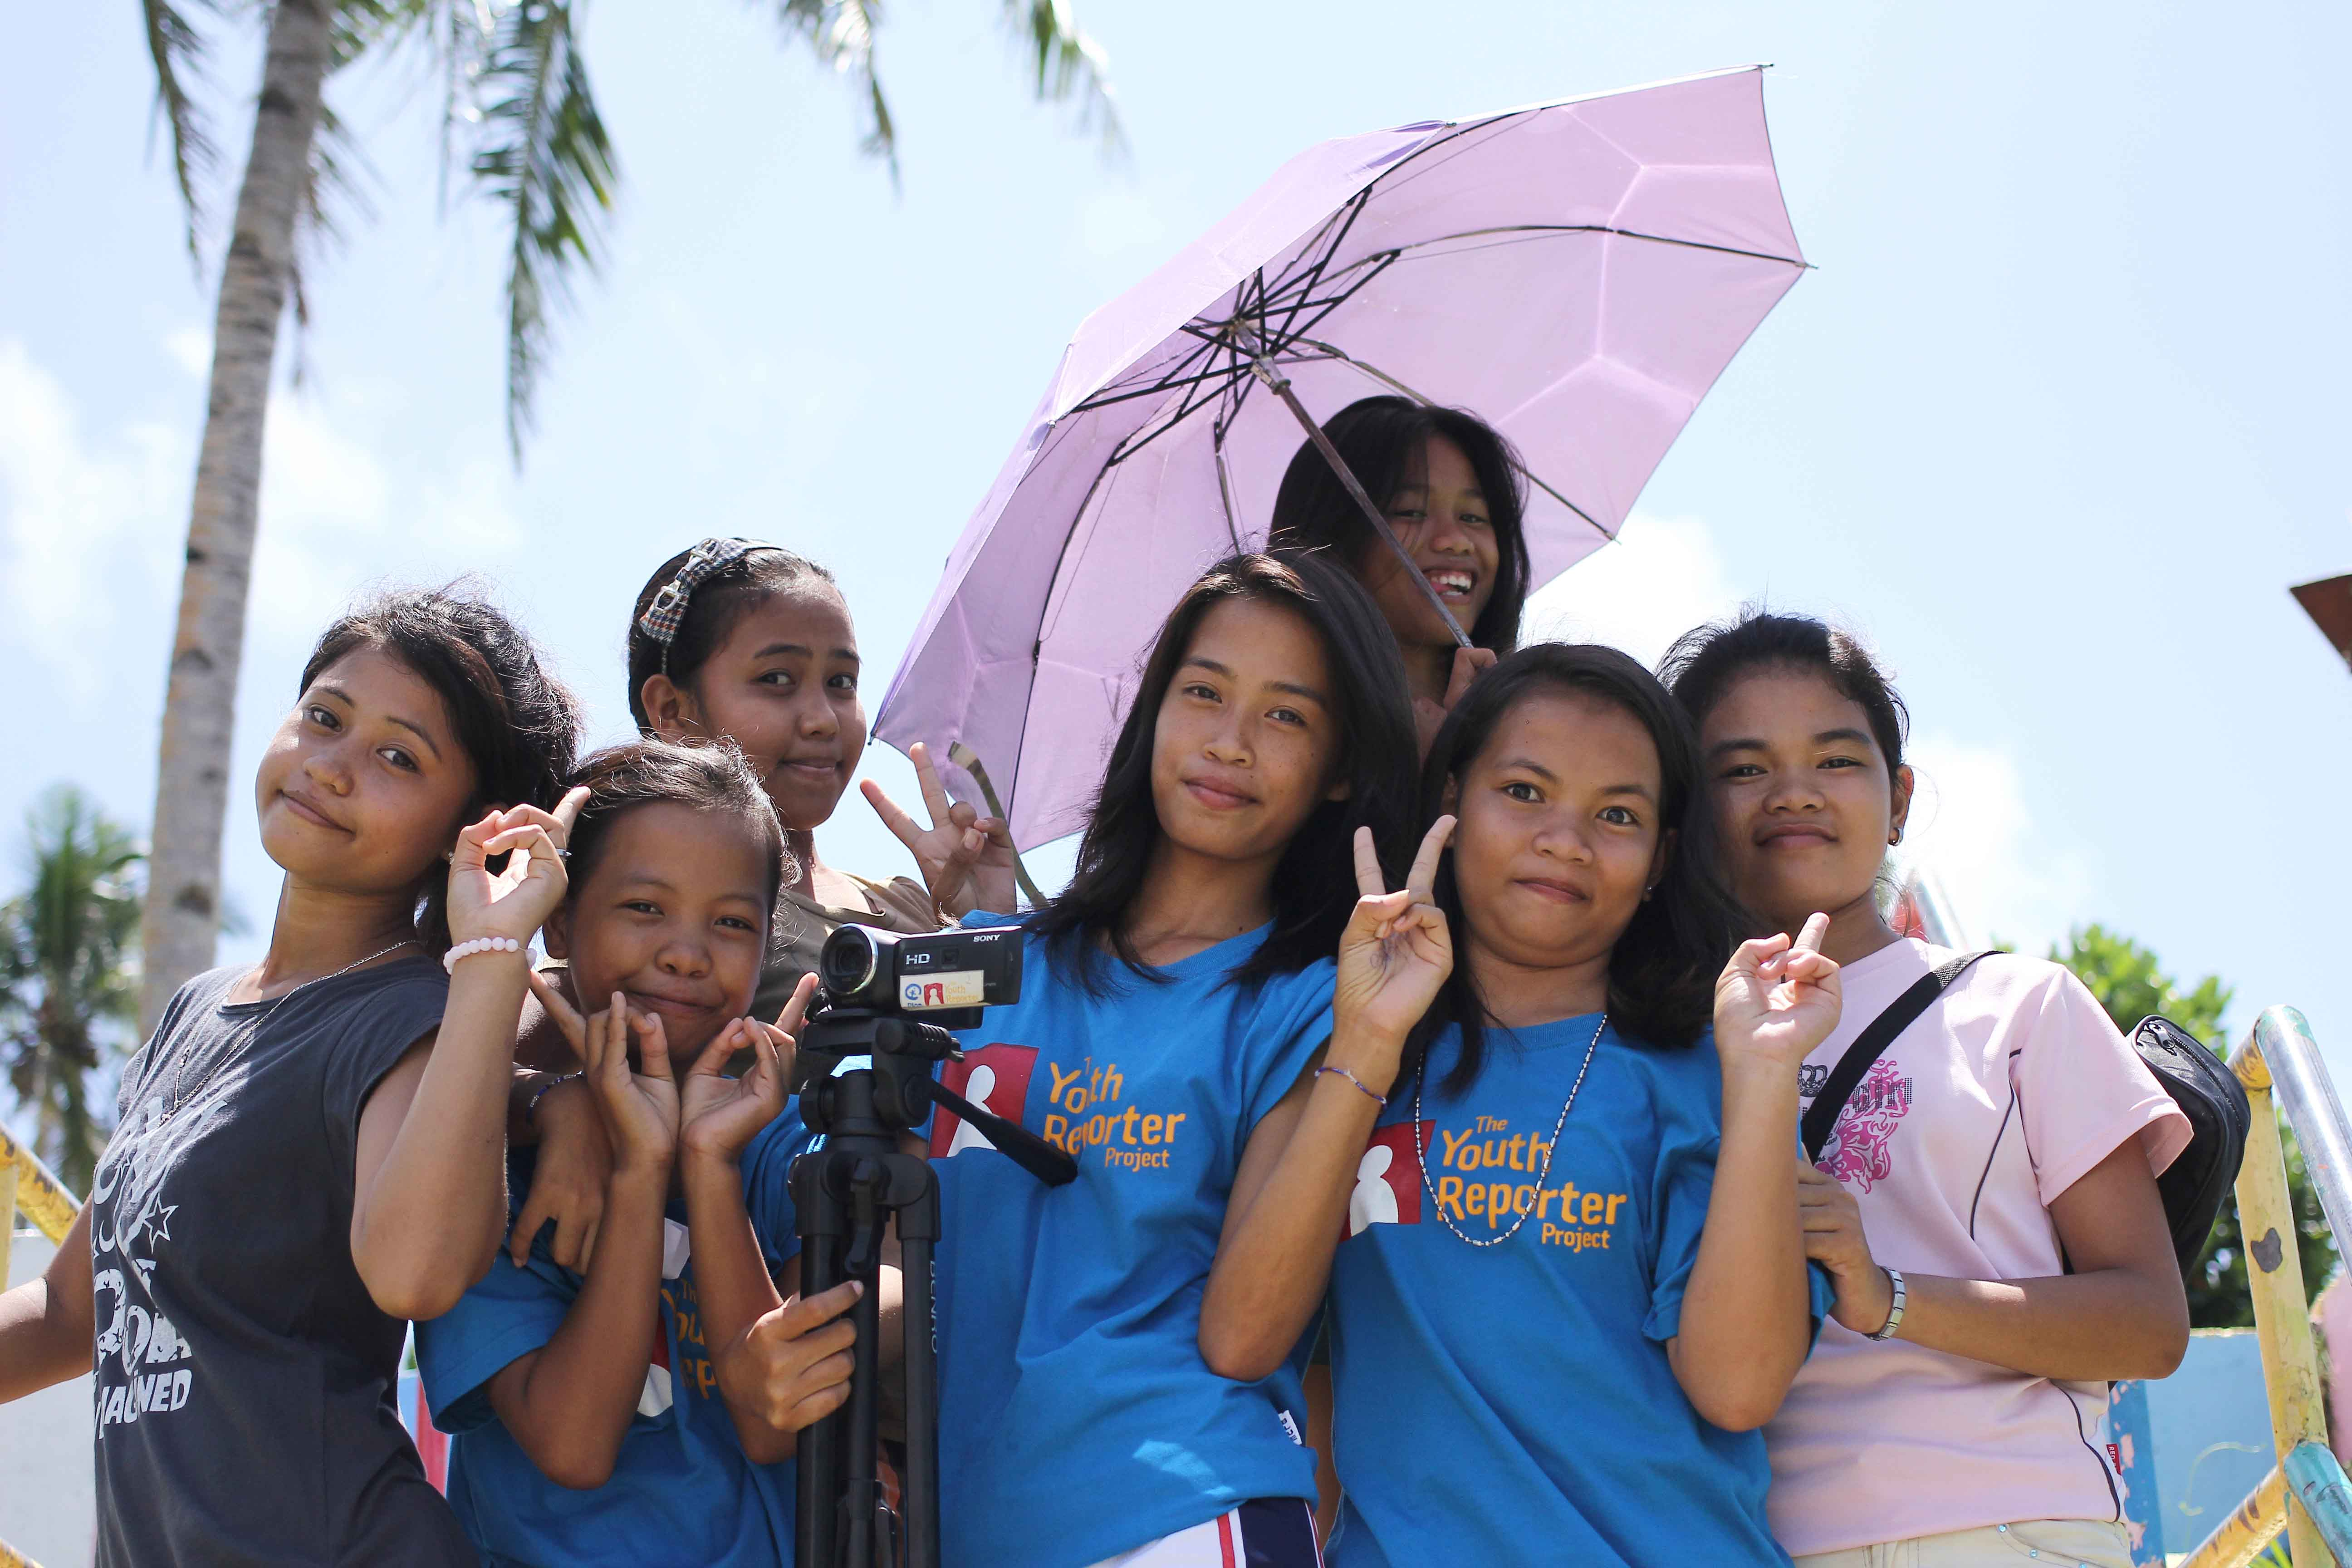 From June 6 to 7, Plan International's Youth Reporter team in Hernani, Eastern Samar participated in a disaster risk reduction and planning workshop. The activity aimed to help the young reporters identify the needs in their community and give them ideas for new reports they can make which will be shown to the community leaders at a public screening. During the activity, the reporters made their own seasonal calendar and hazard map, and made plans on how to build on what they have learned during the one-year Youth Reporter project which is a community-based, participatory youth media project under the Typhoon Haiyan Emergency Response Programme. It forms part of Plan's child-focused disaster response initiated to involve children and youth in the recovery process of their own communities.